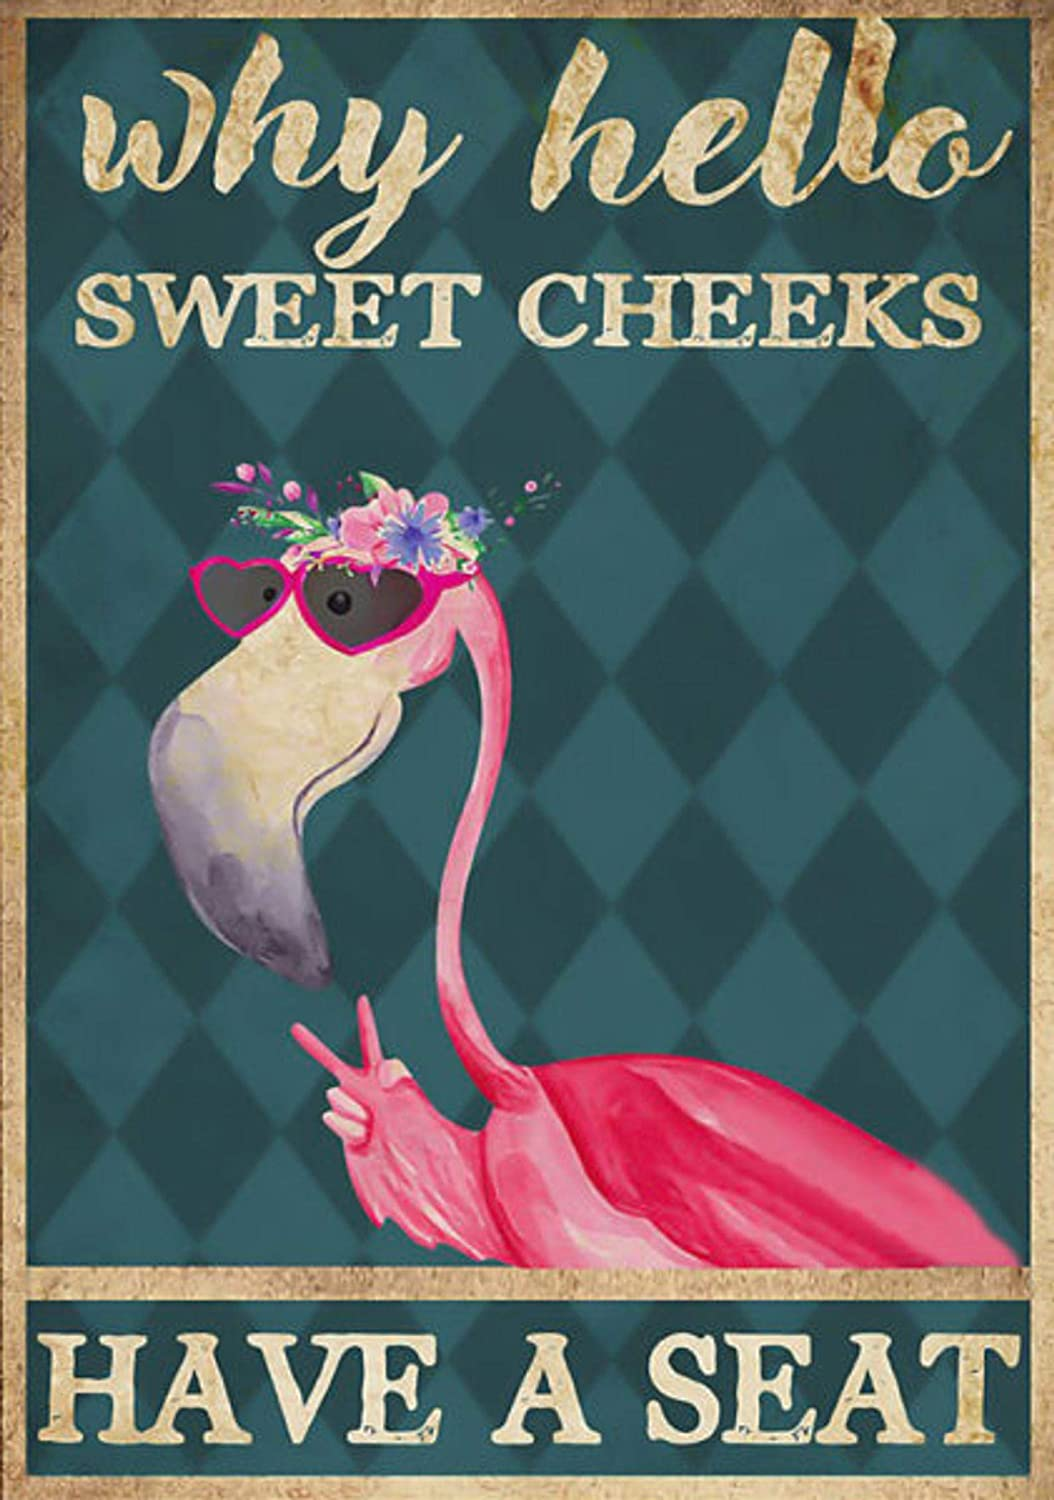 Pozino Metal Sign Custom Why Hello Sweet Cheeks Have A Seat Pink Flamingo Wall Decorations Tin Sign Vintage 16x12 inch